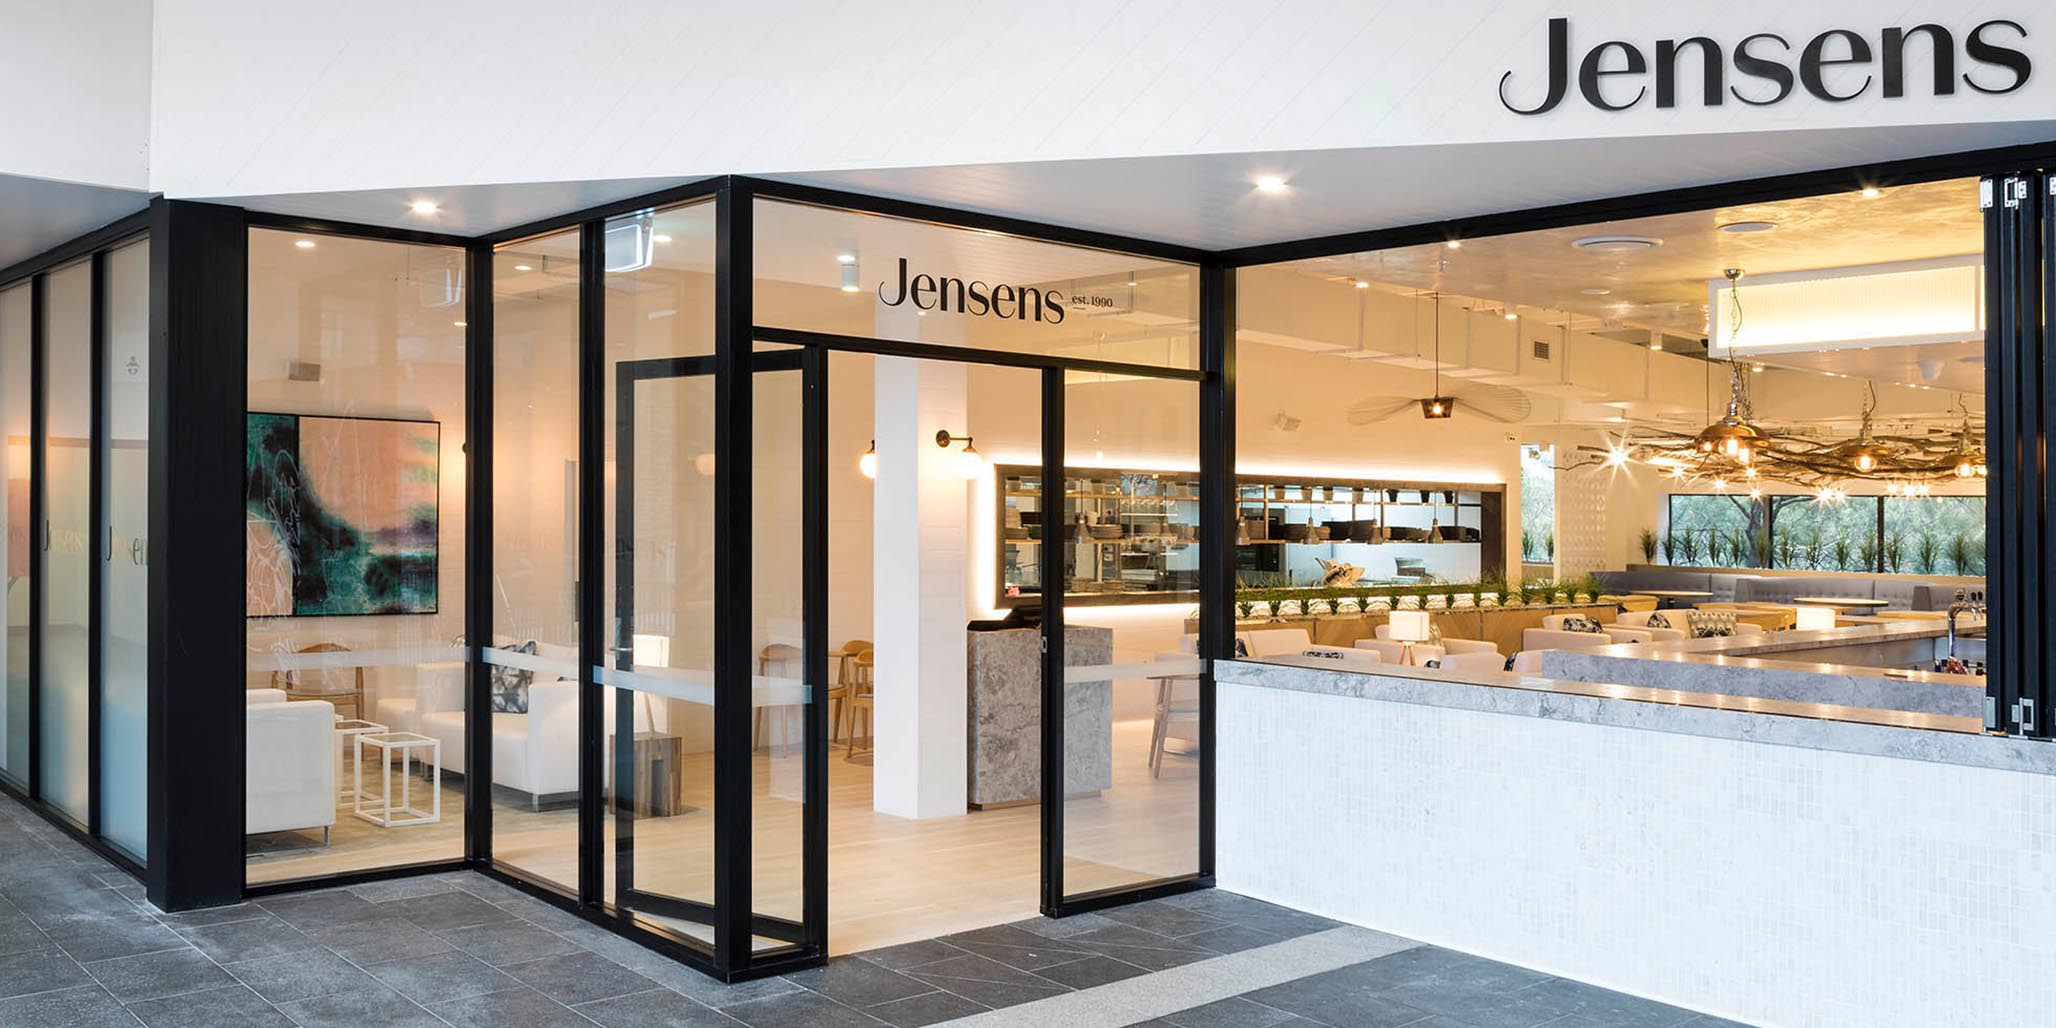 Brand & Website Design project in Sydney for hospitality venue Jensens Restaurant, a leader in the food service industry of Australia, image A